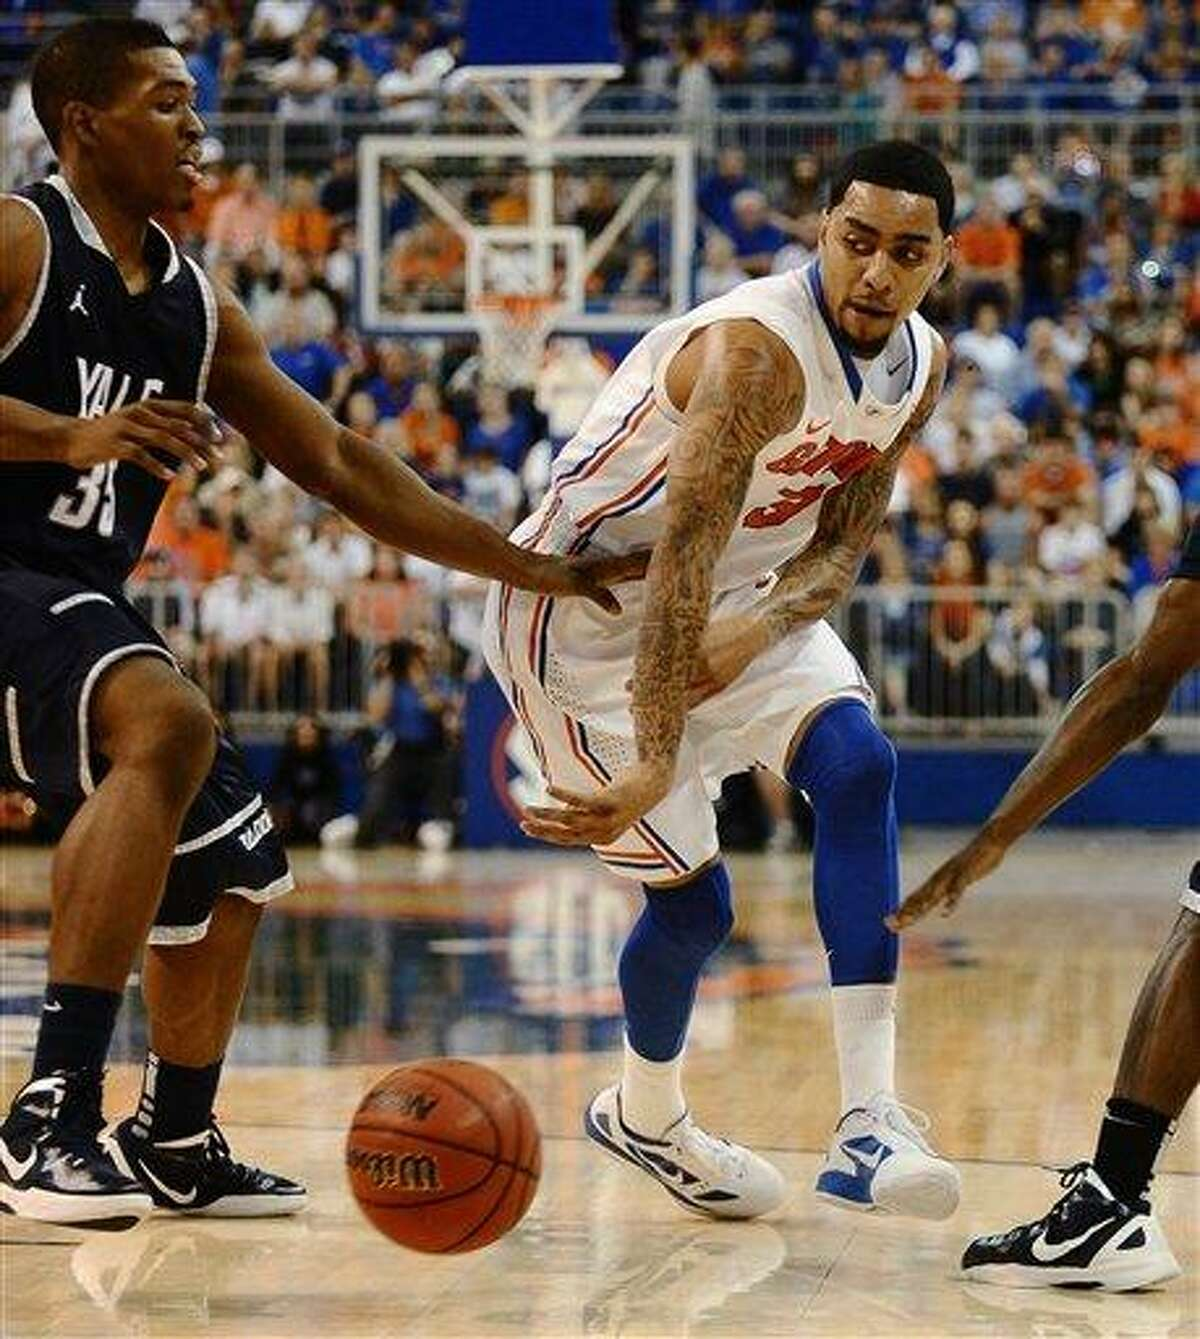 Florida's Mike Rosario (3) passes the ball around Yale's Brandon Sherrod (35) during the first half of an NCAA college basketball game in Gainesville, Fla., Saturday, Dec. 31, 2011. Florida defeated Yale 90-70. (AP Photo/Phil Sandlin)